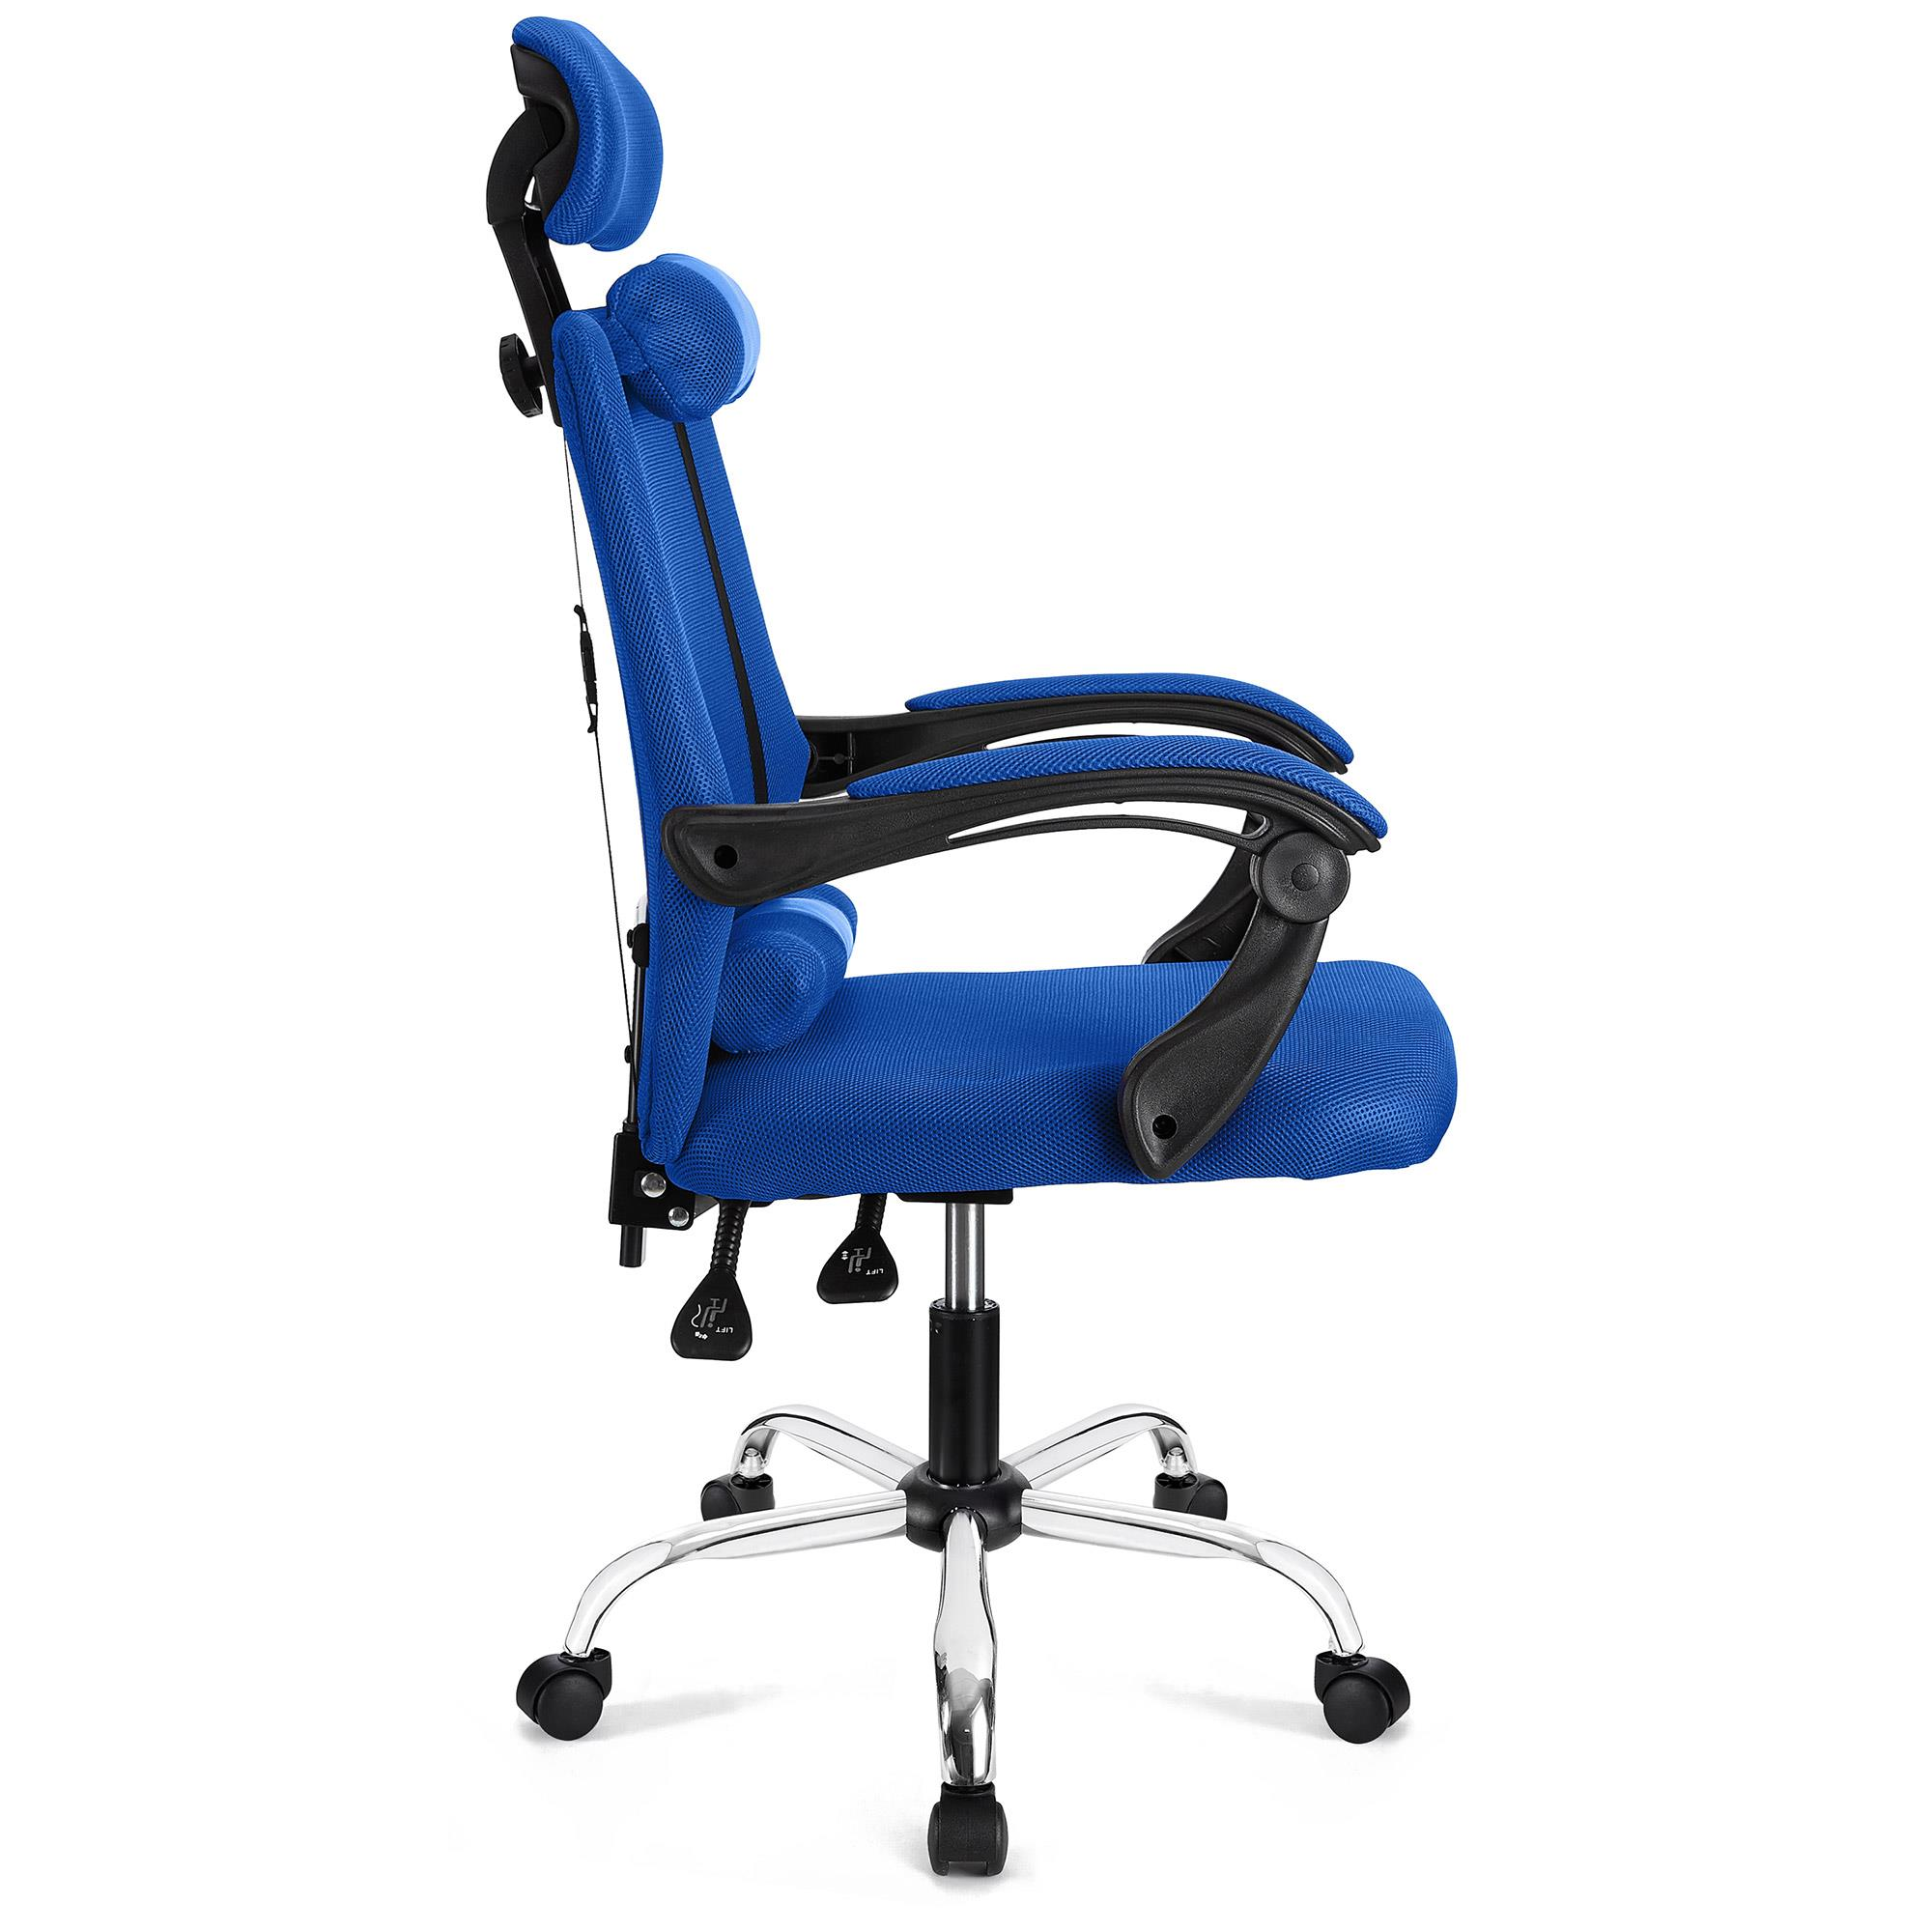 Silla ergonomica fabio reclinable en malla transpirable color azul silla ergon mica fabio - Silla 1 2 3 reclinable ...